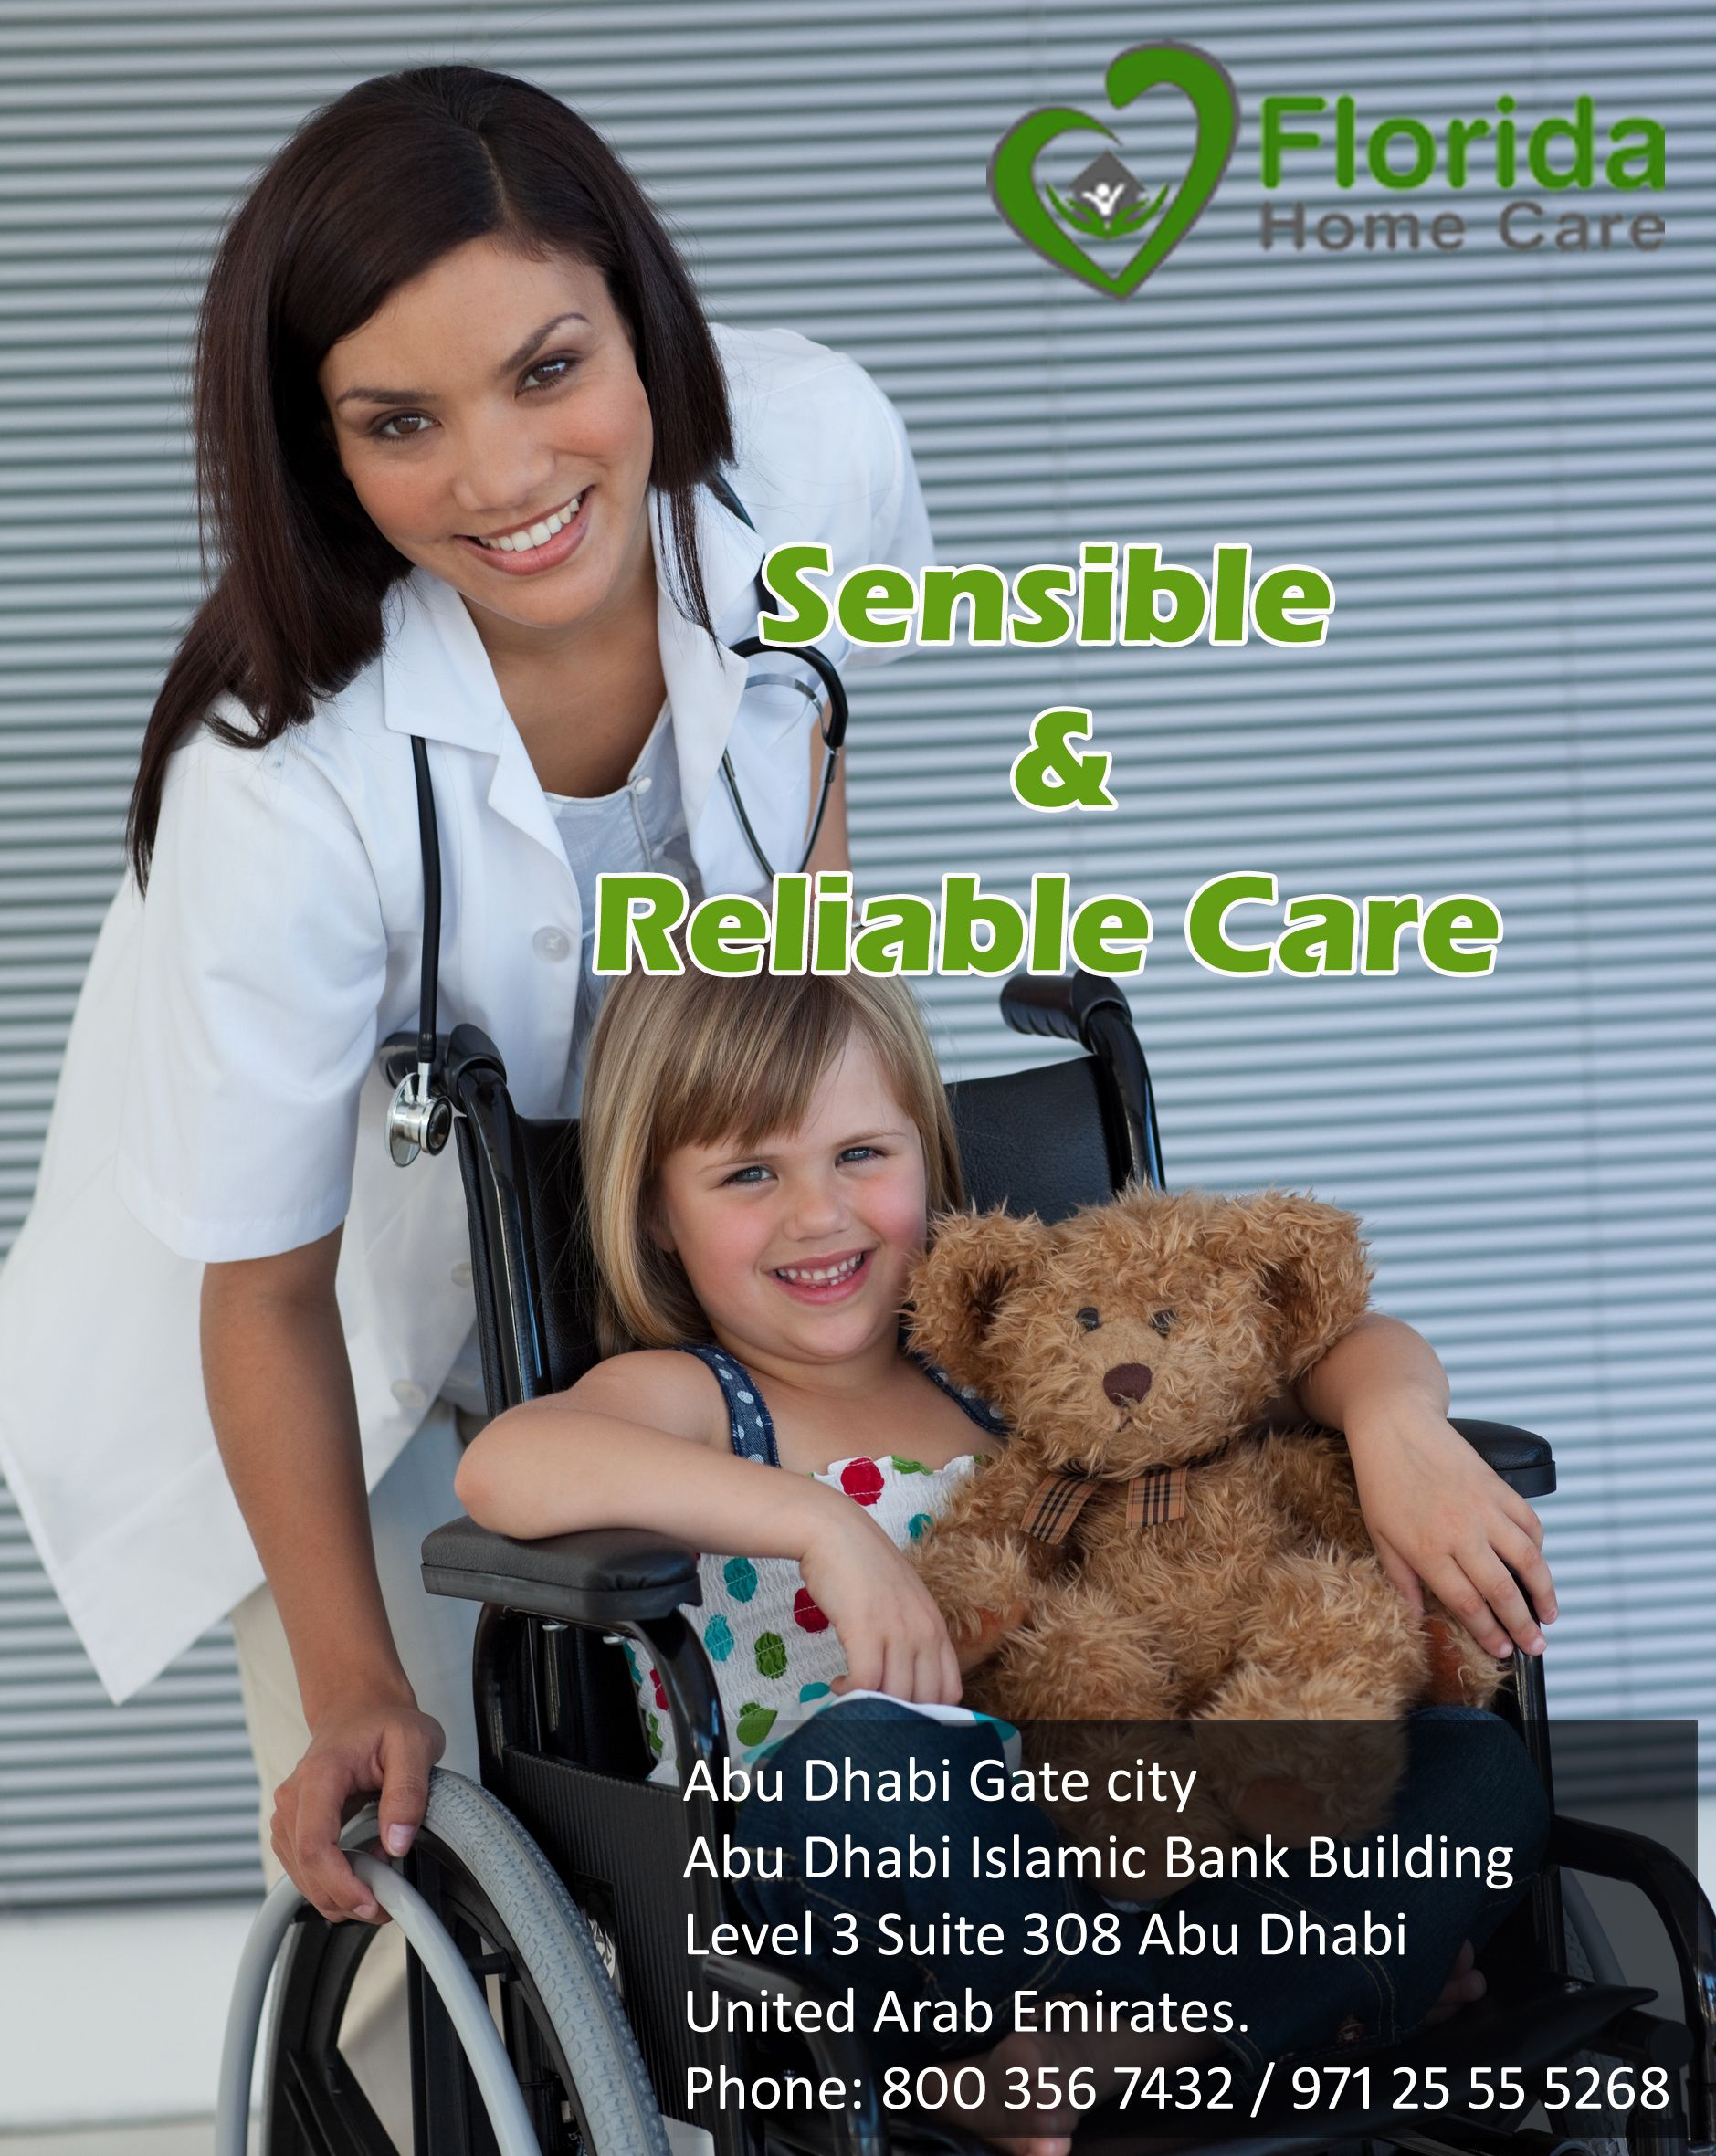 Floridahomecare provides the next generation of childcare